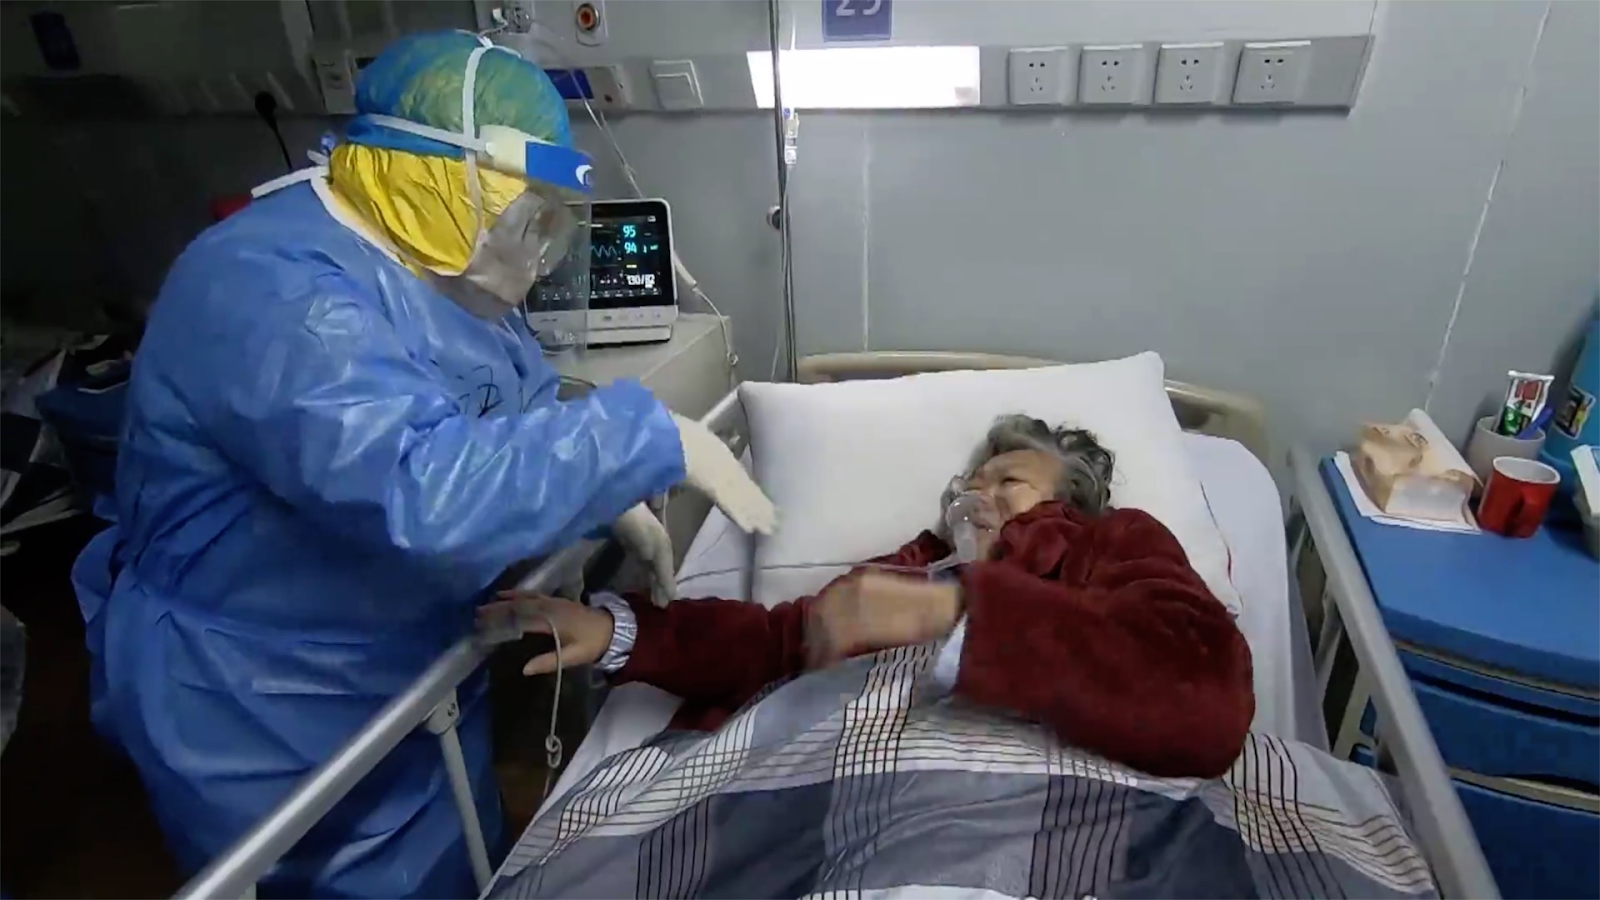 A health care worker wearing PPE gives aid to an elderly woman suffering from COVID-19.